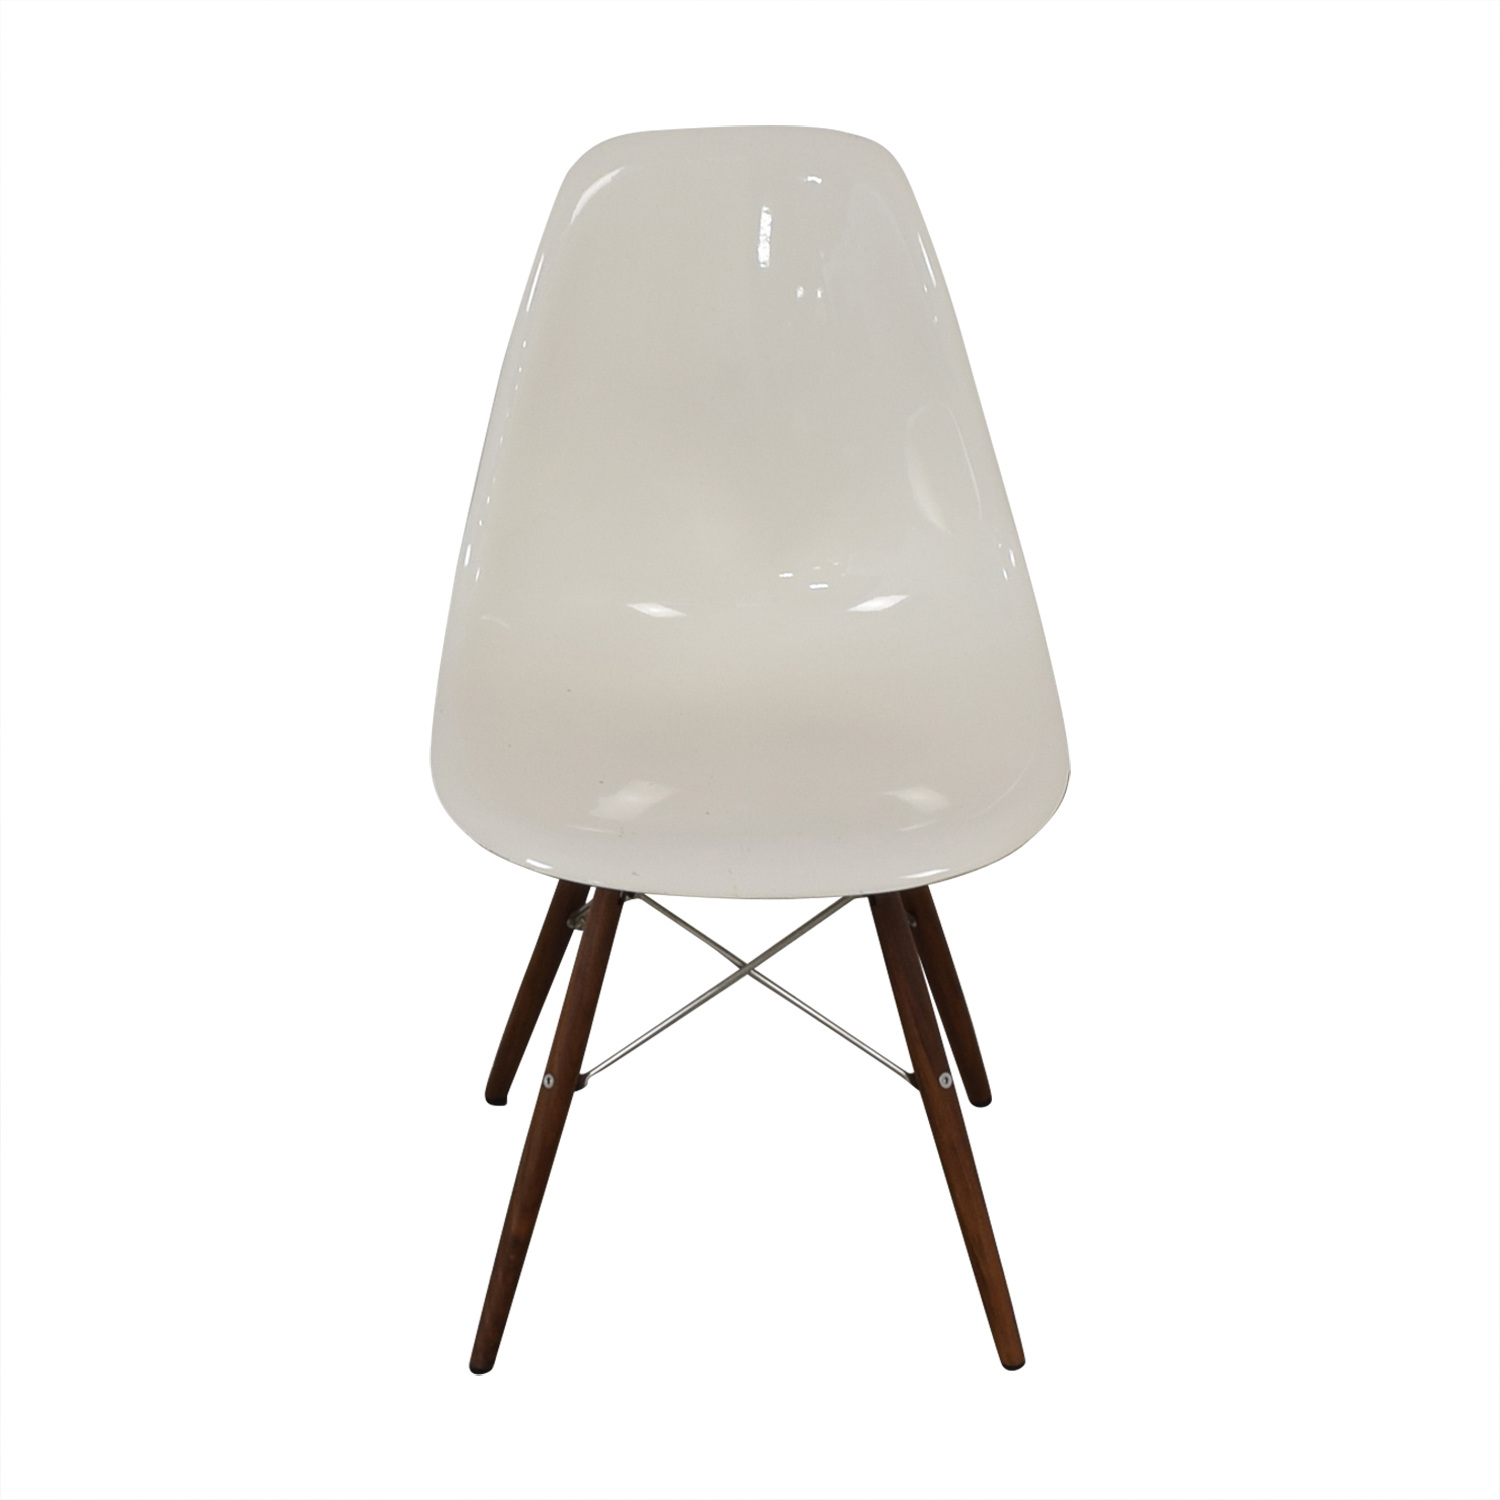 Herman Miller Herman Miller Eames Plastic Molded Chair White discount